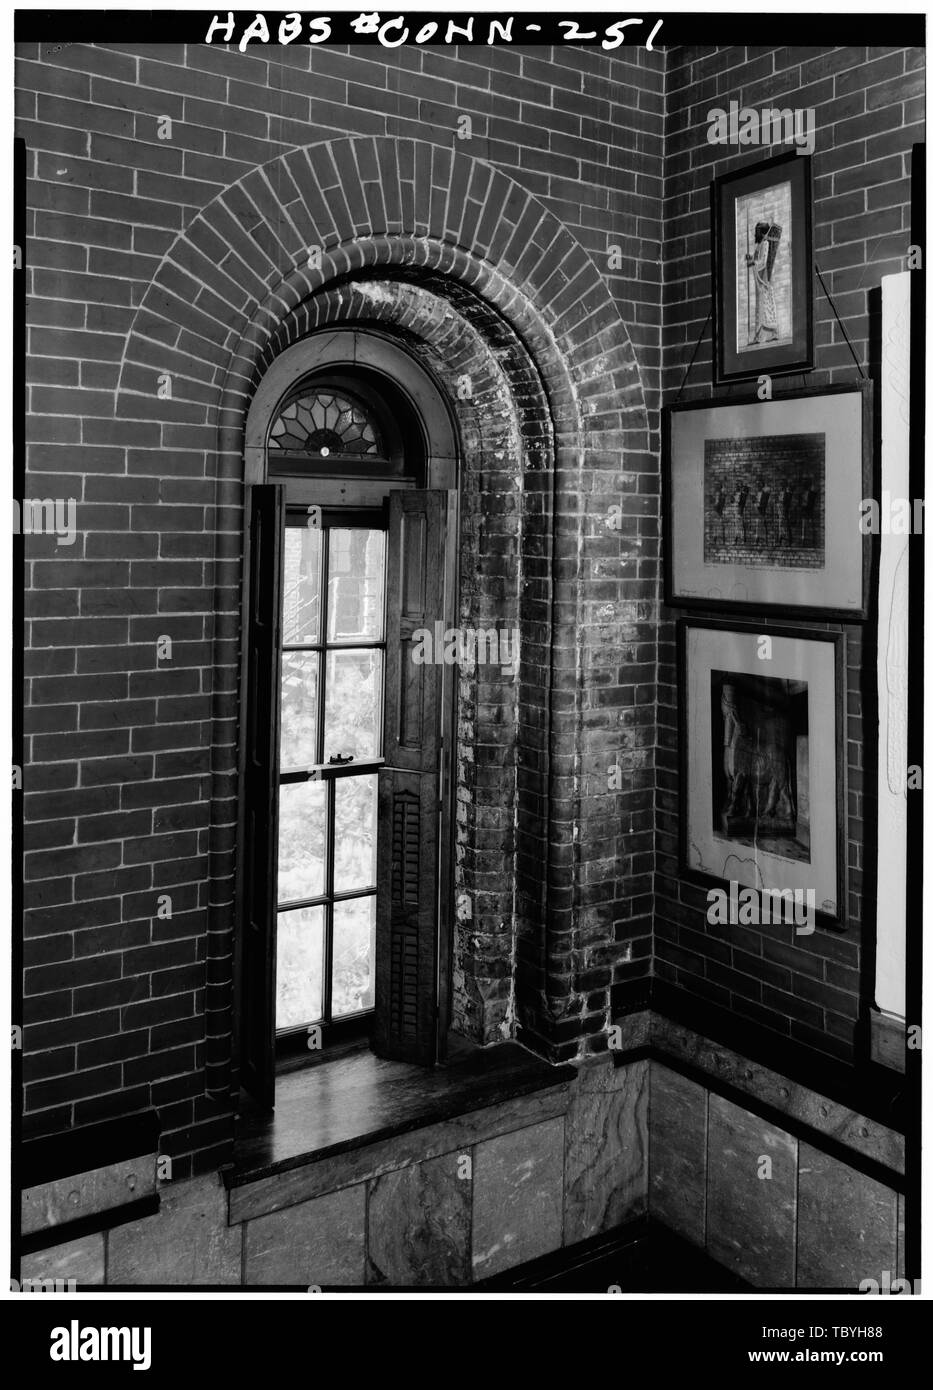 March 1961 Interior Of Typical Small Window With Round Head